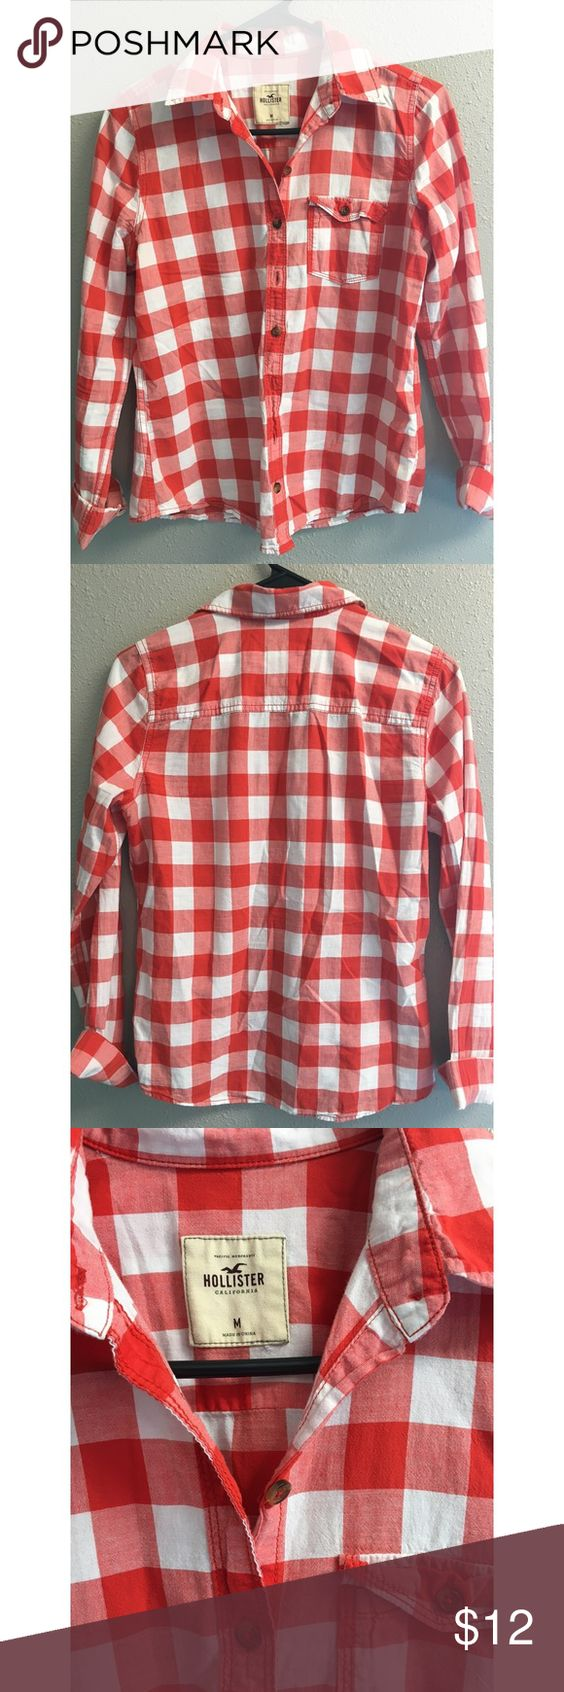 Plaid Shirt Red plaid shirt - Never worn Hollister Tops Button Down Shirts